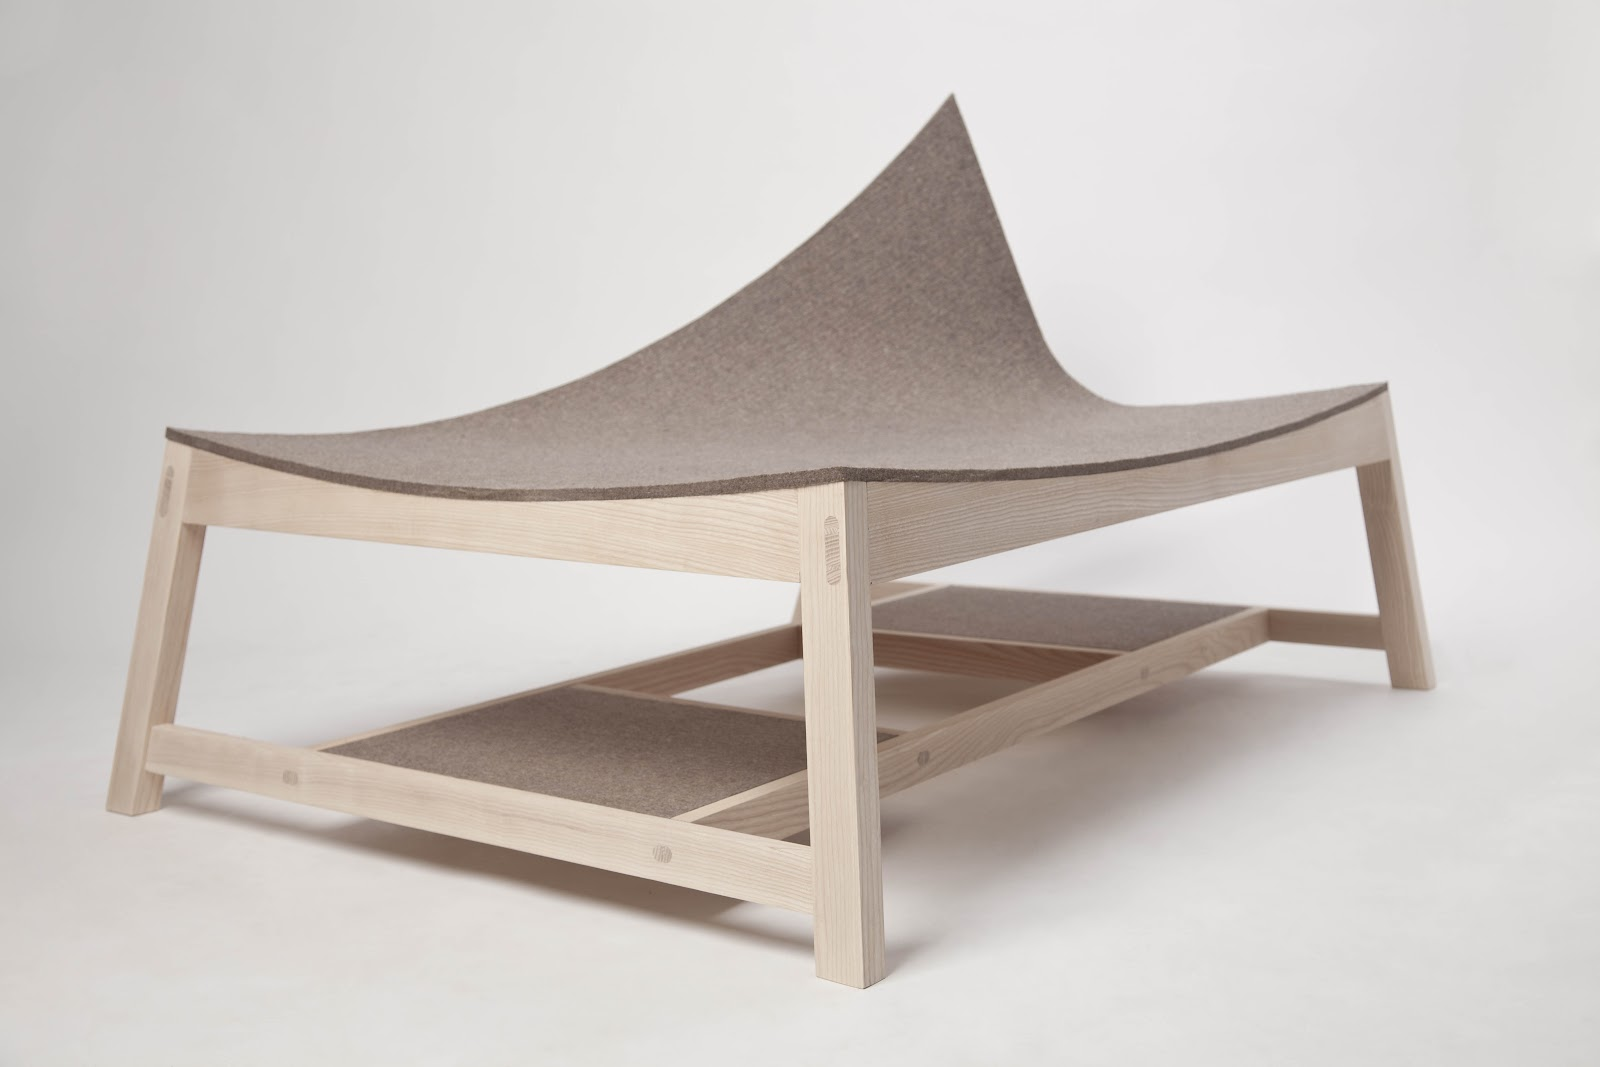 awesome-design-ideas-Experimental-Seating-Furniture-Tamas-Bozsik-4